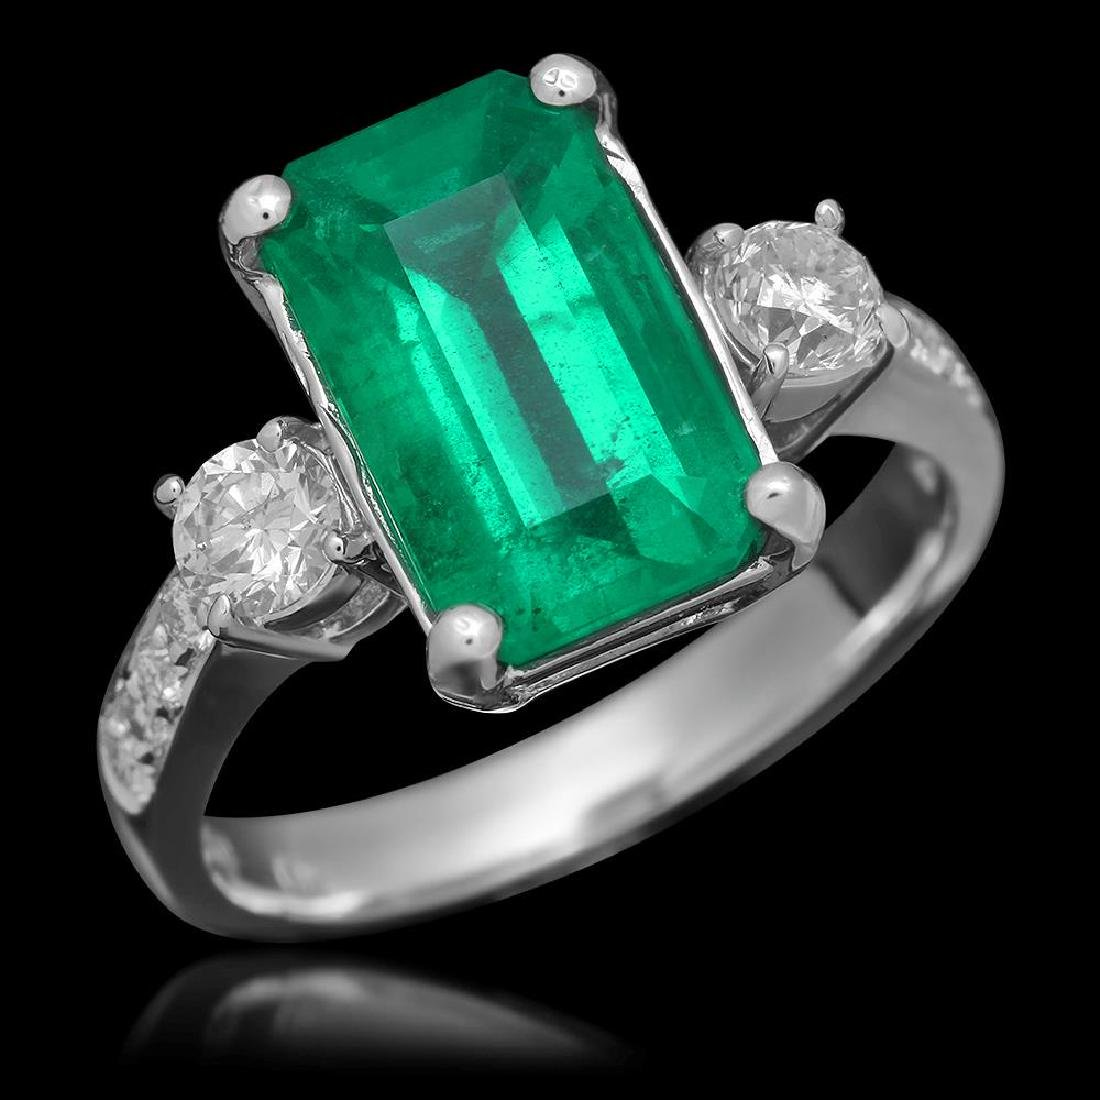 18K Gold 3.68 Emerald .61 Diamond Ring